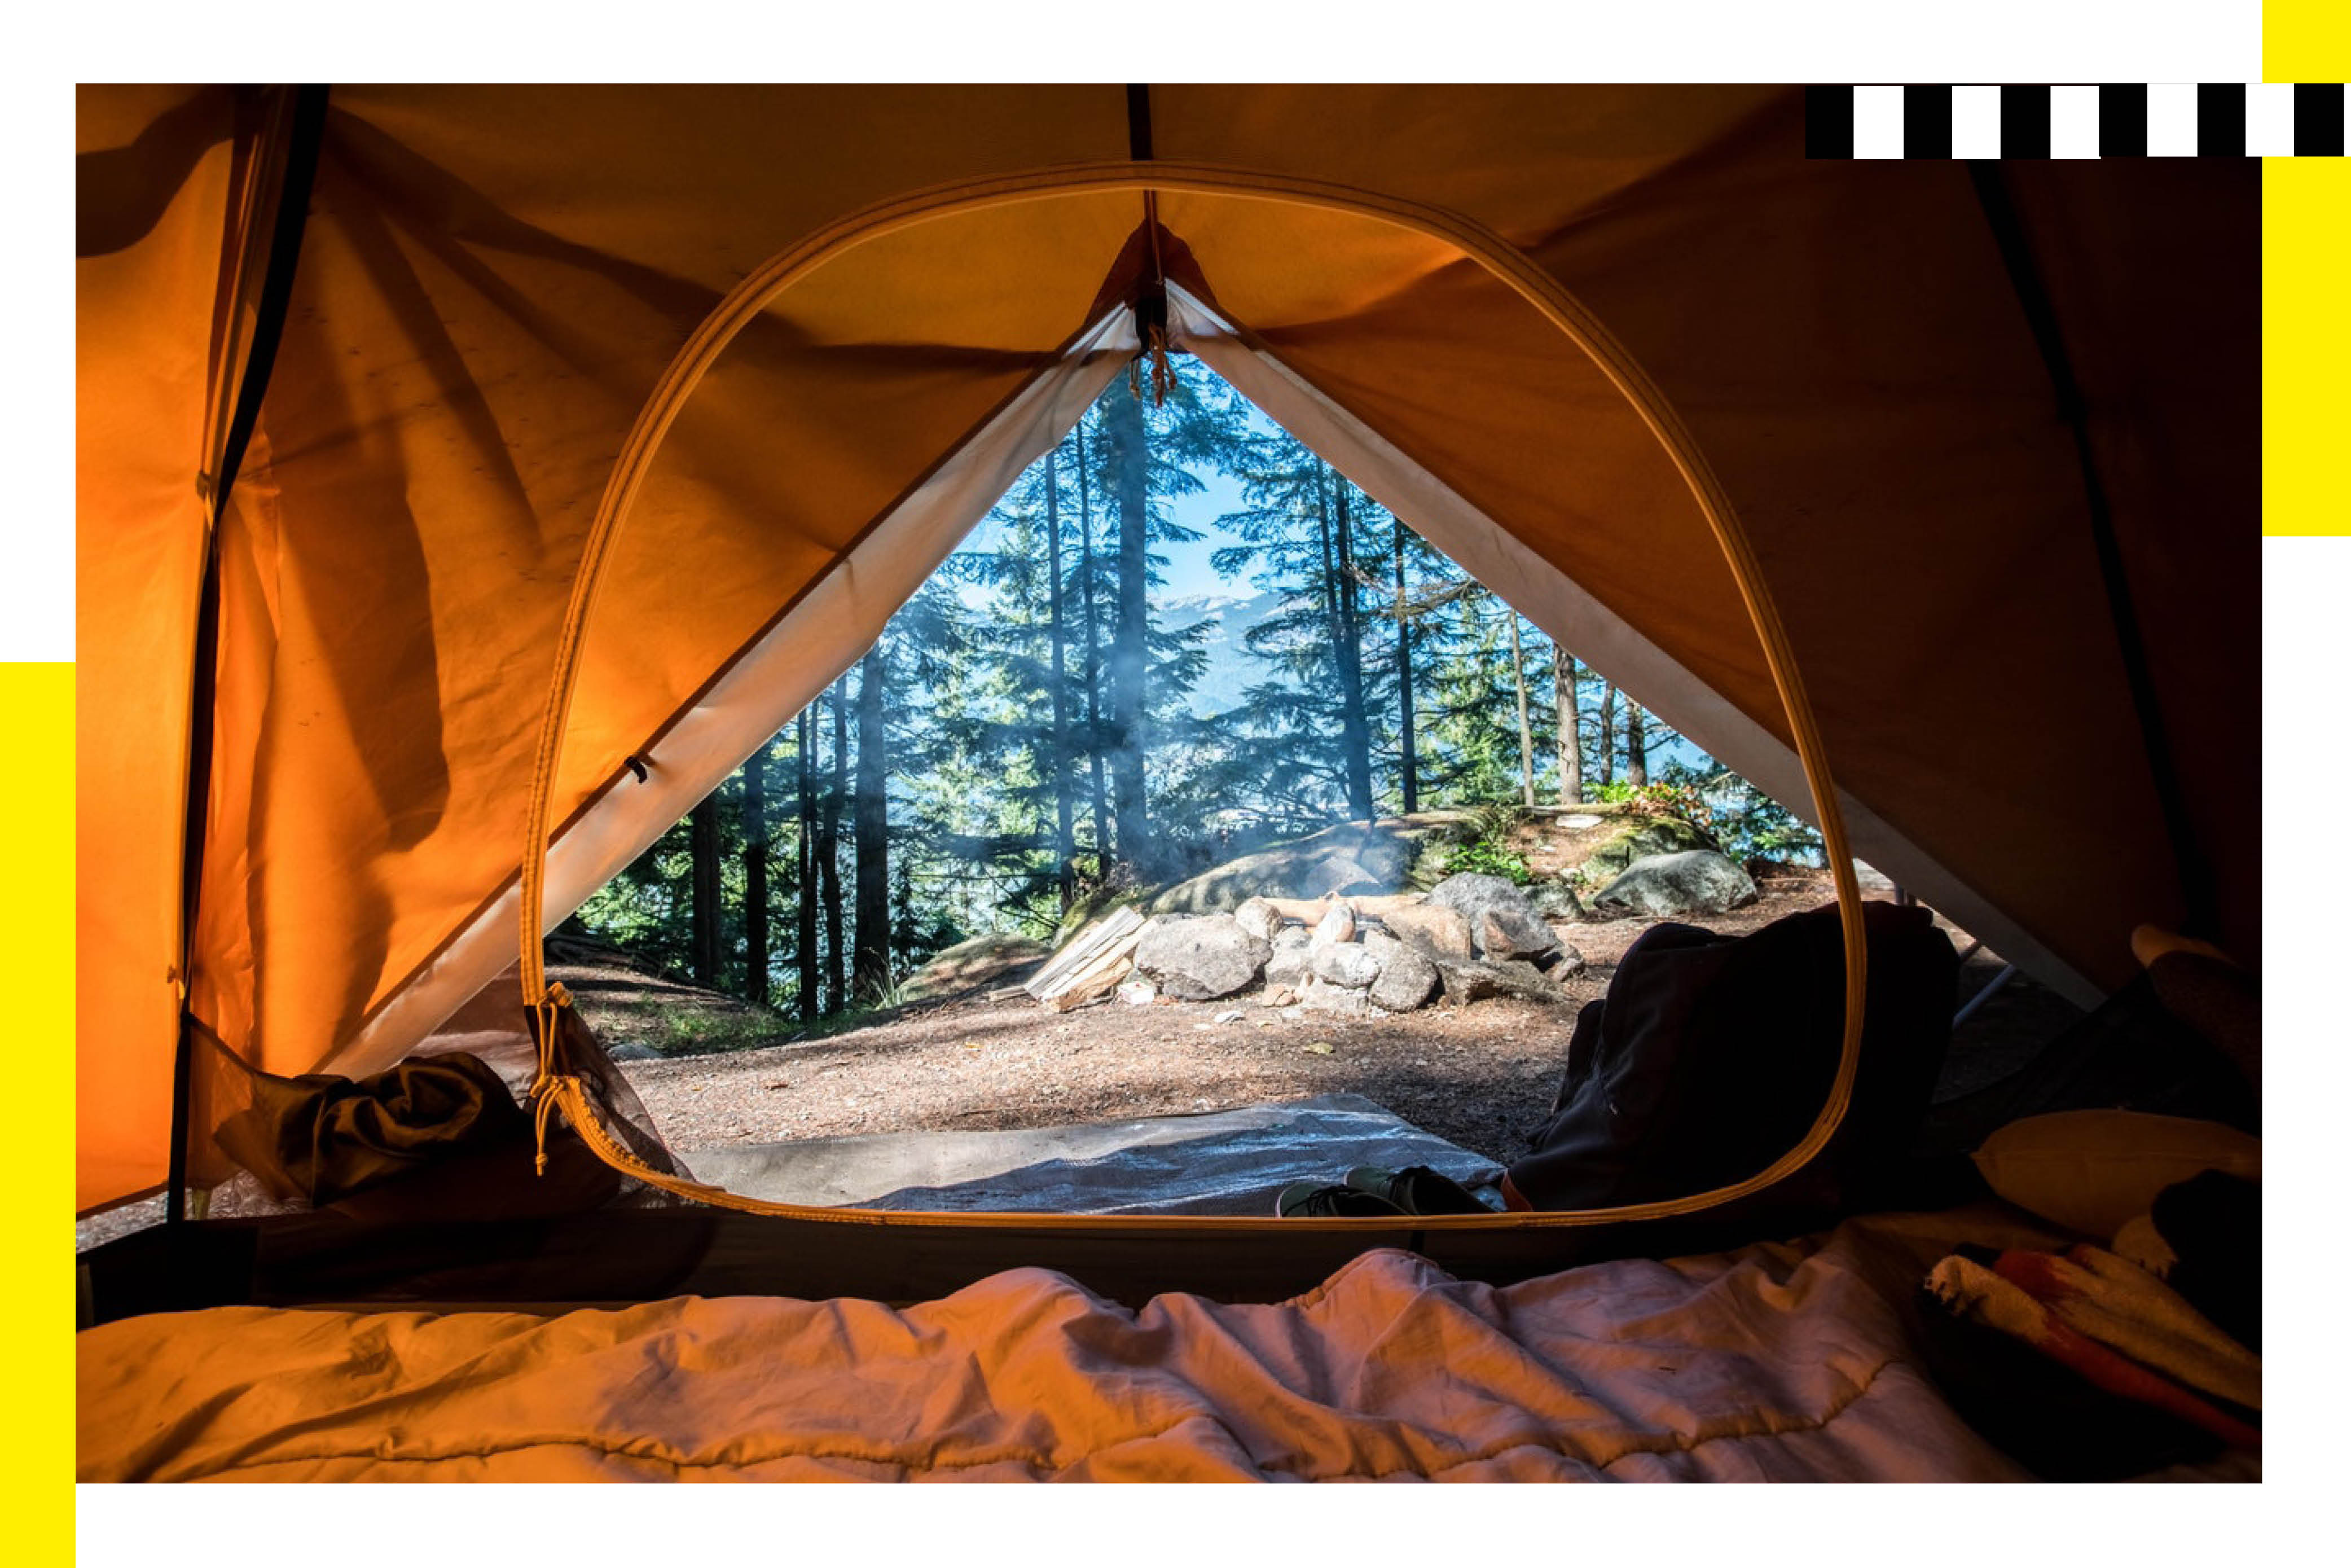 Present tents: camping should be about mindfulness, not the fear of getting your equipment mixed up